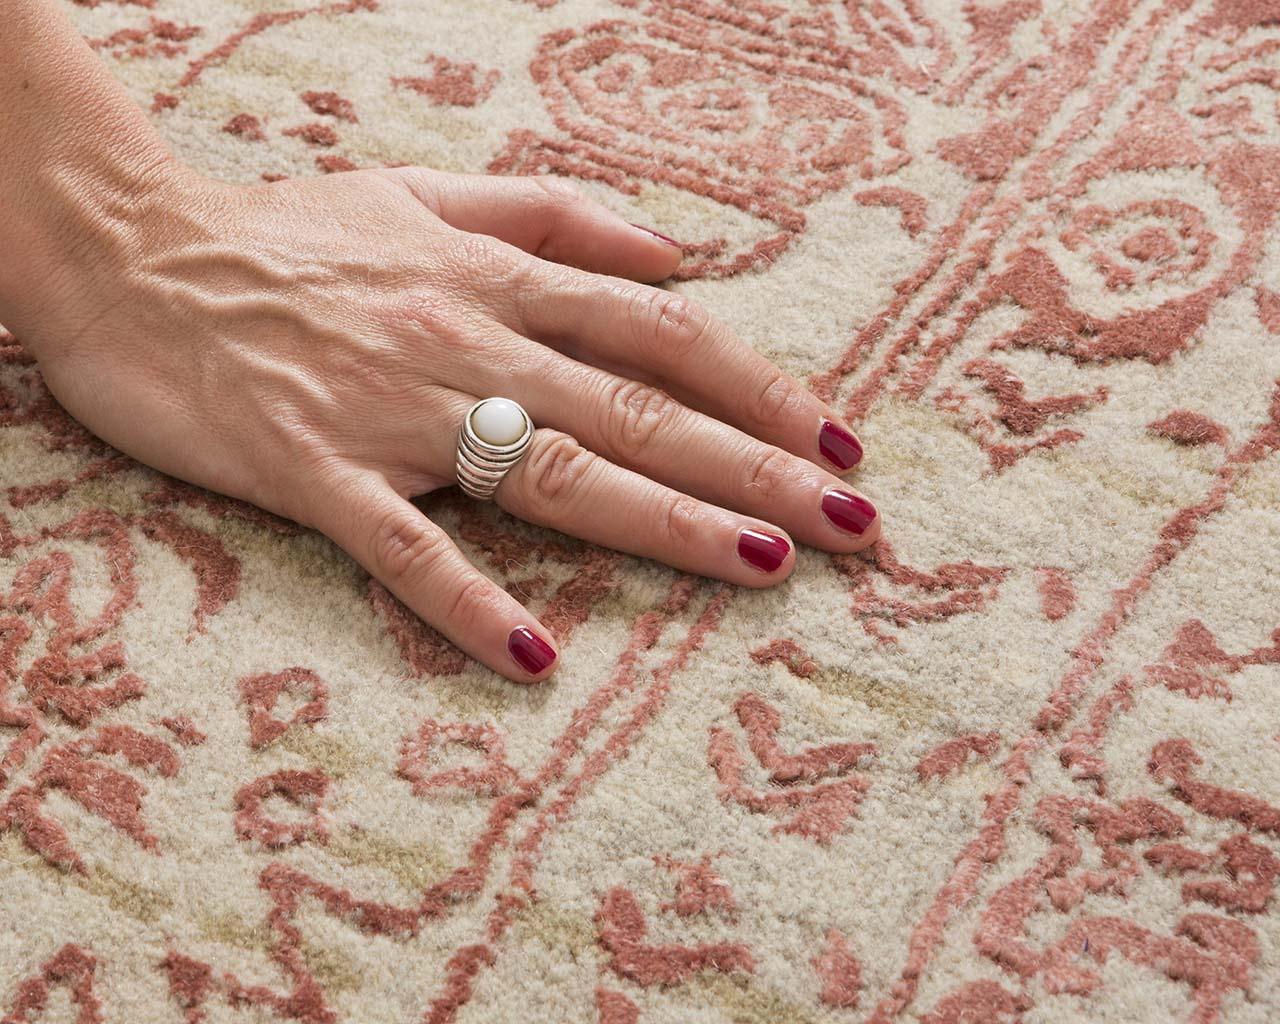 fire brick fresh hand with nail polish old persian carpets